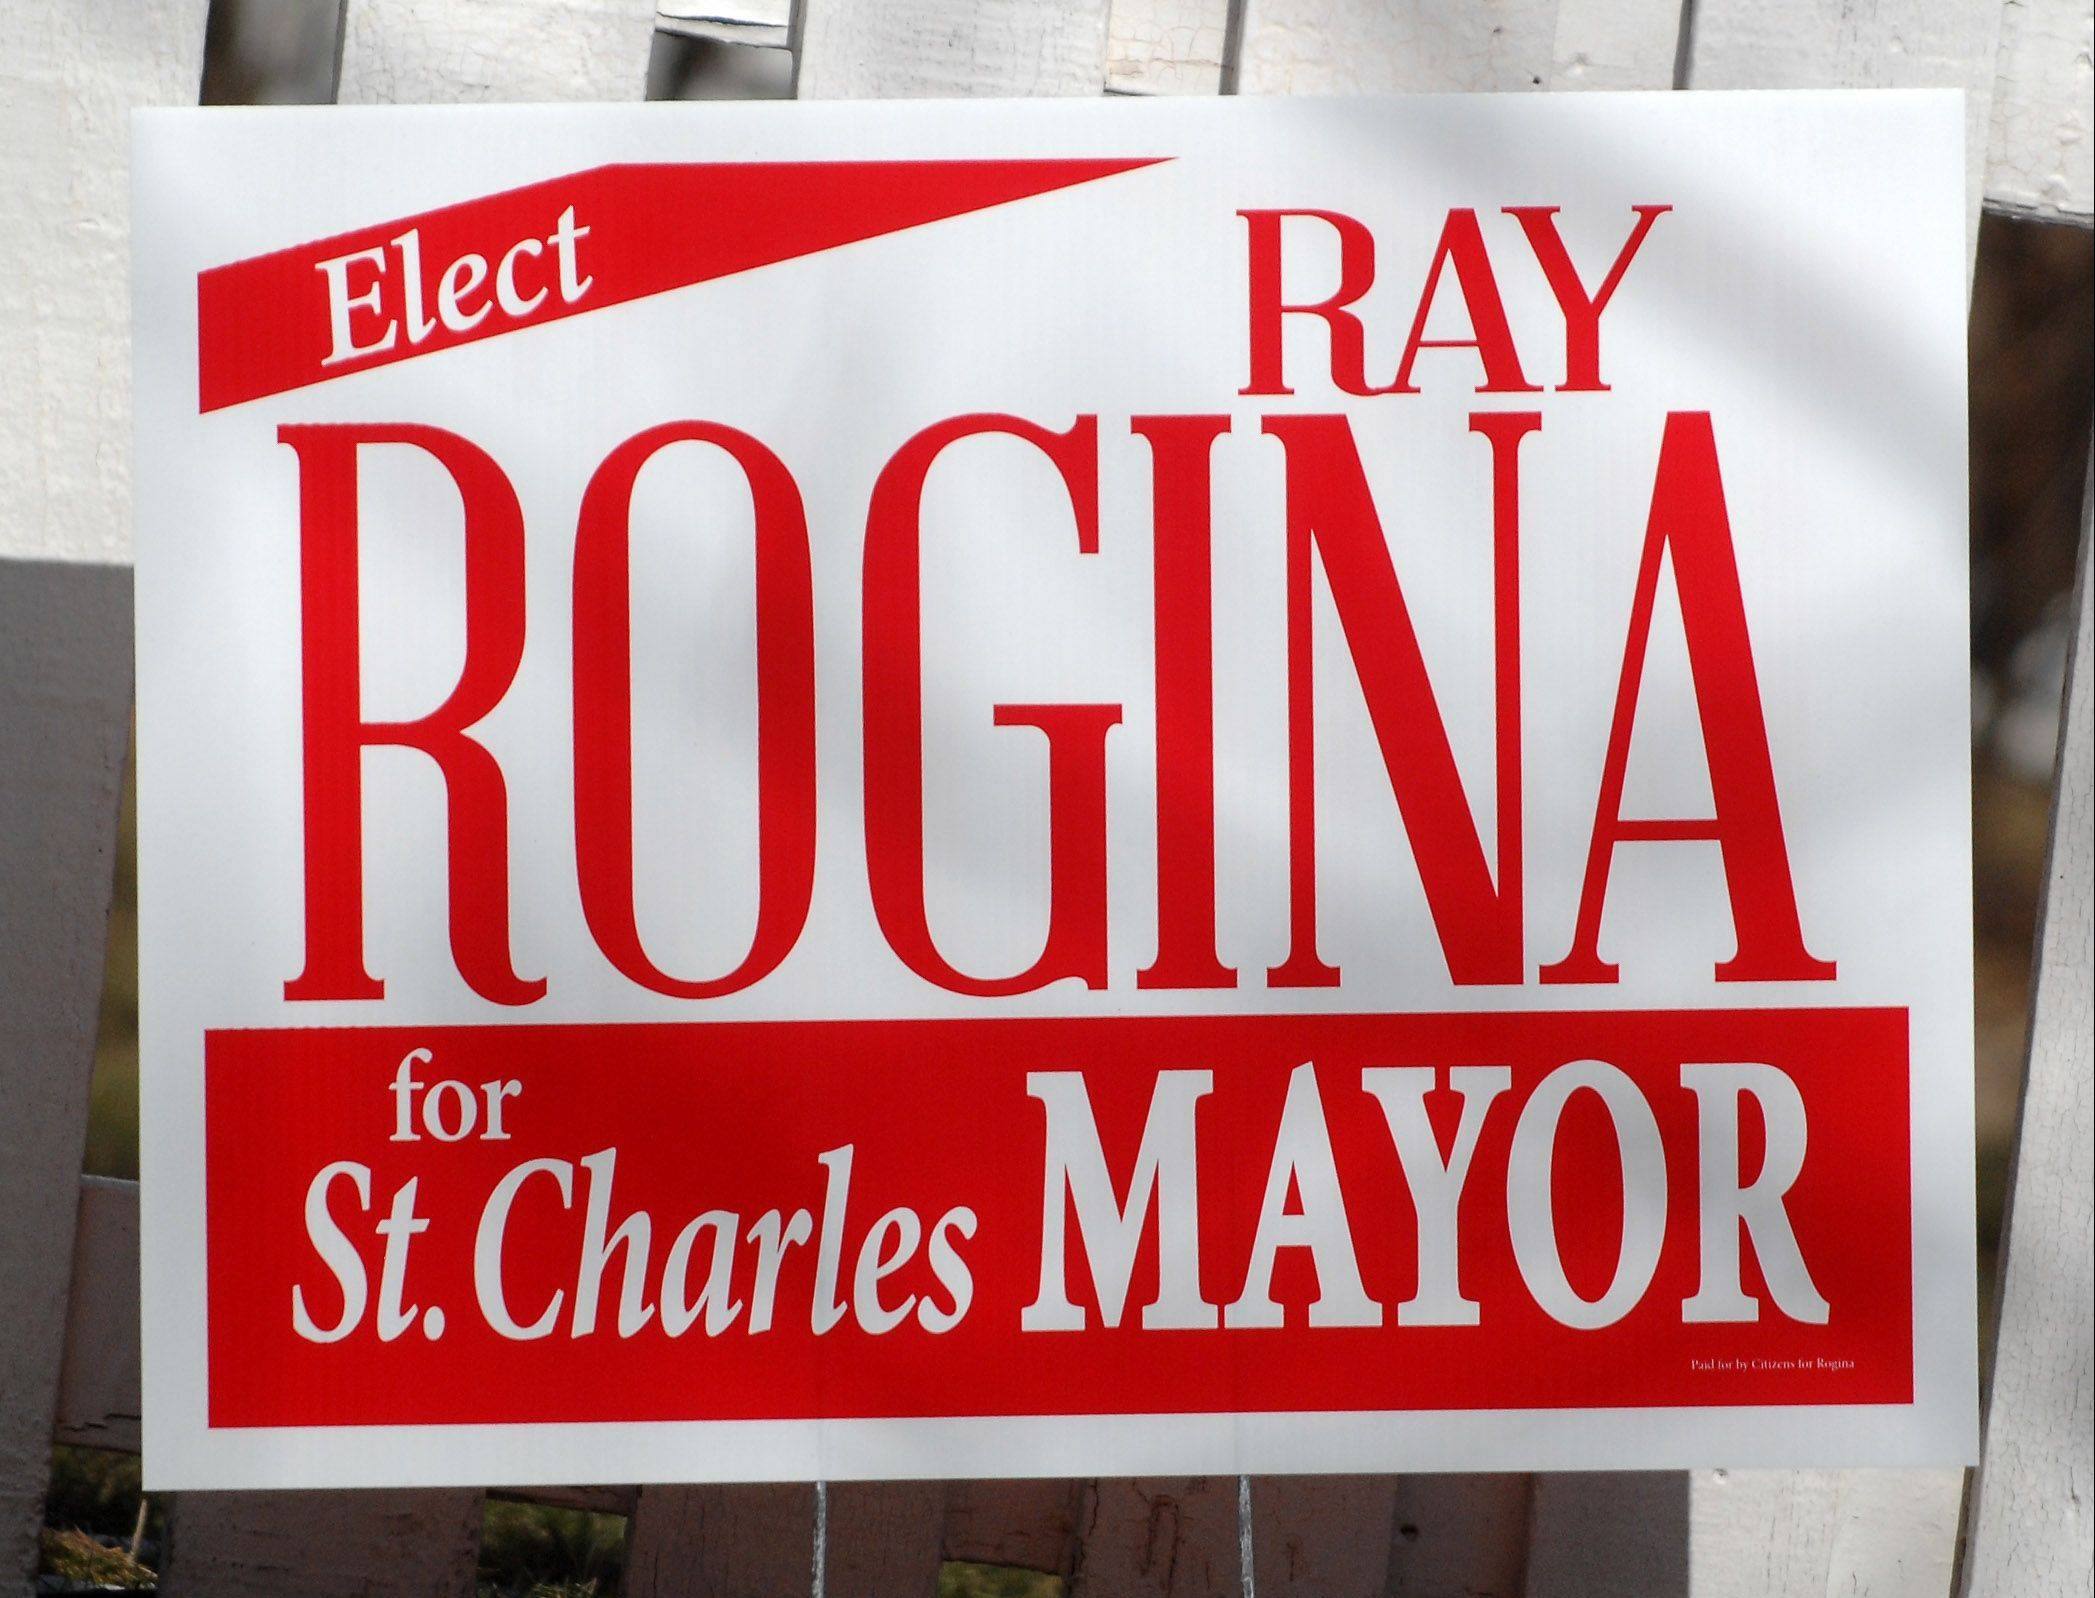 A yard sign for St. Charles mayoral candidate Ray Rogina.